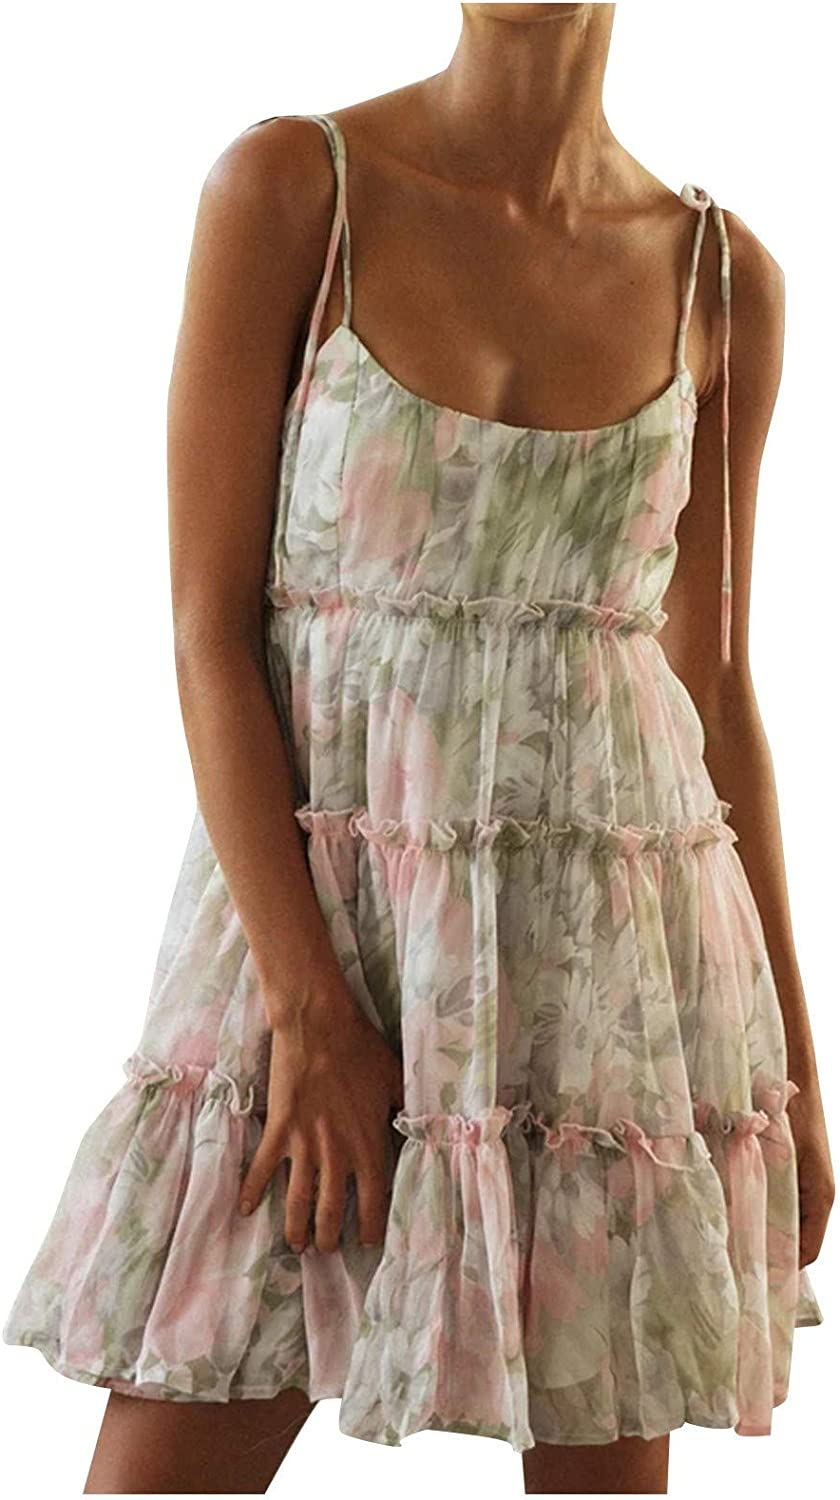 Women's Casual Comfortable Halter Small Floral Mesh Beach Resort Dress Best Gift for Women and Girls